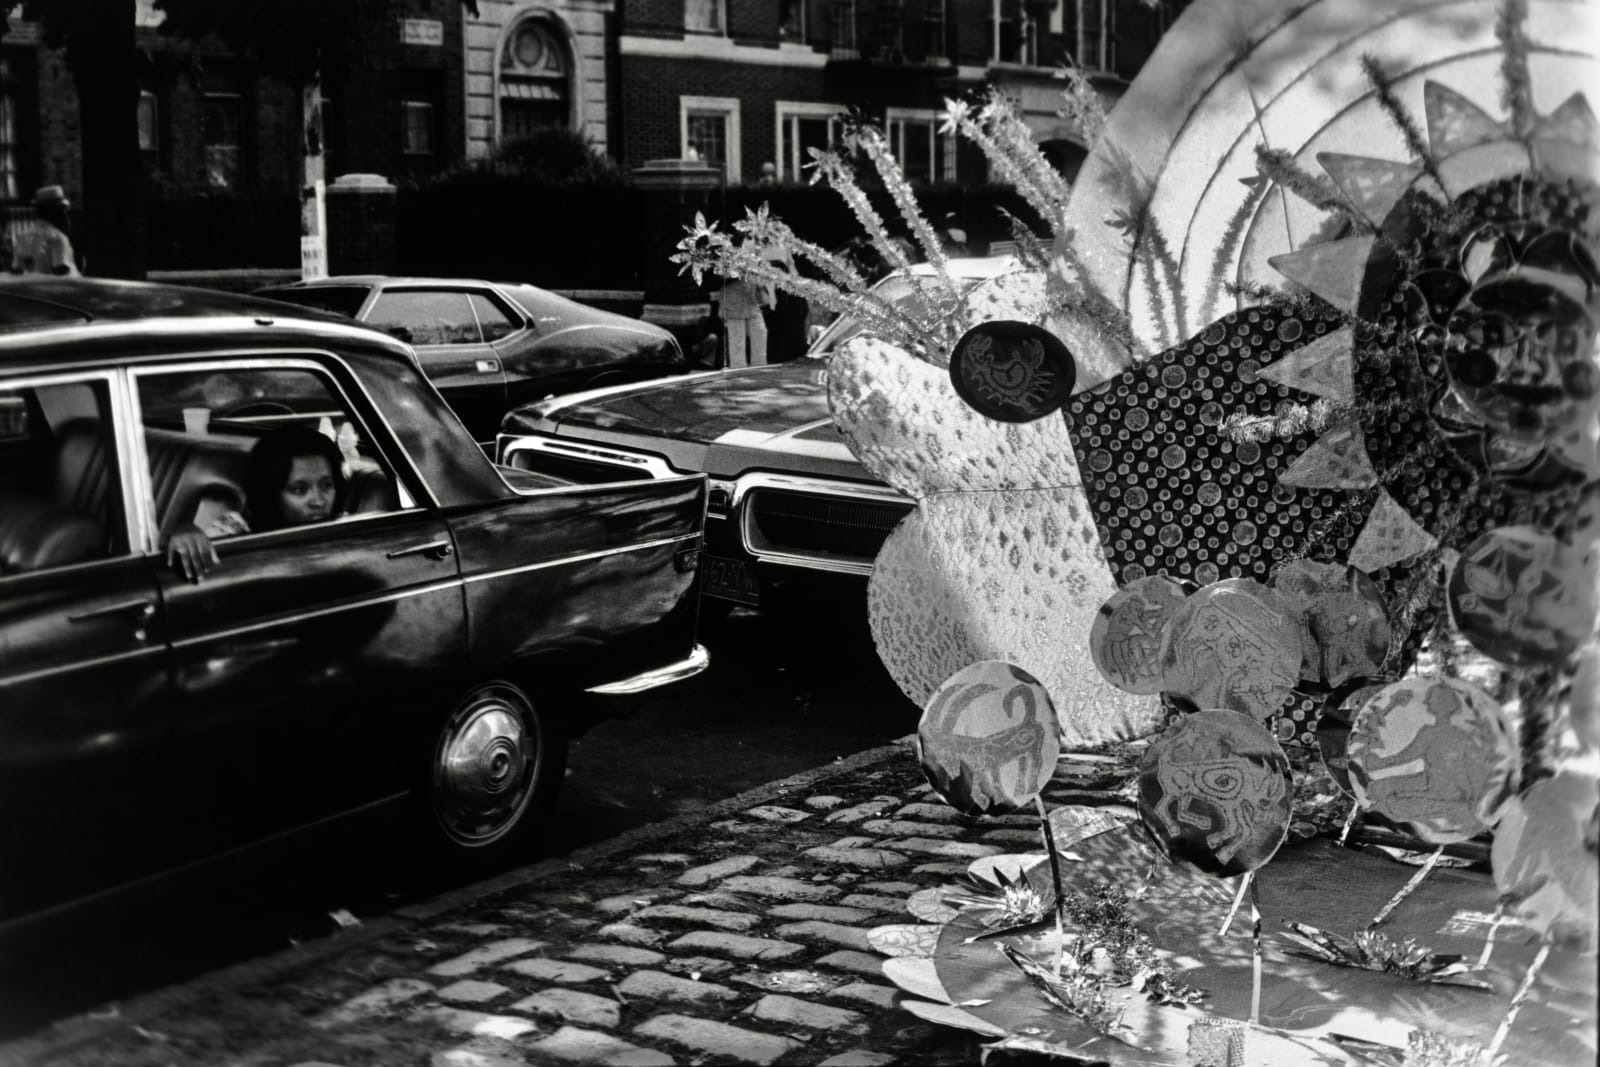 Ming Smith, West Indian Parade, Brooklyn, New York, 1972